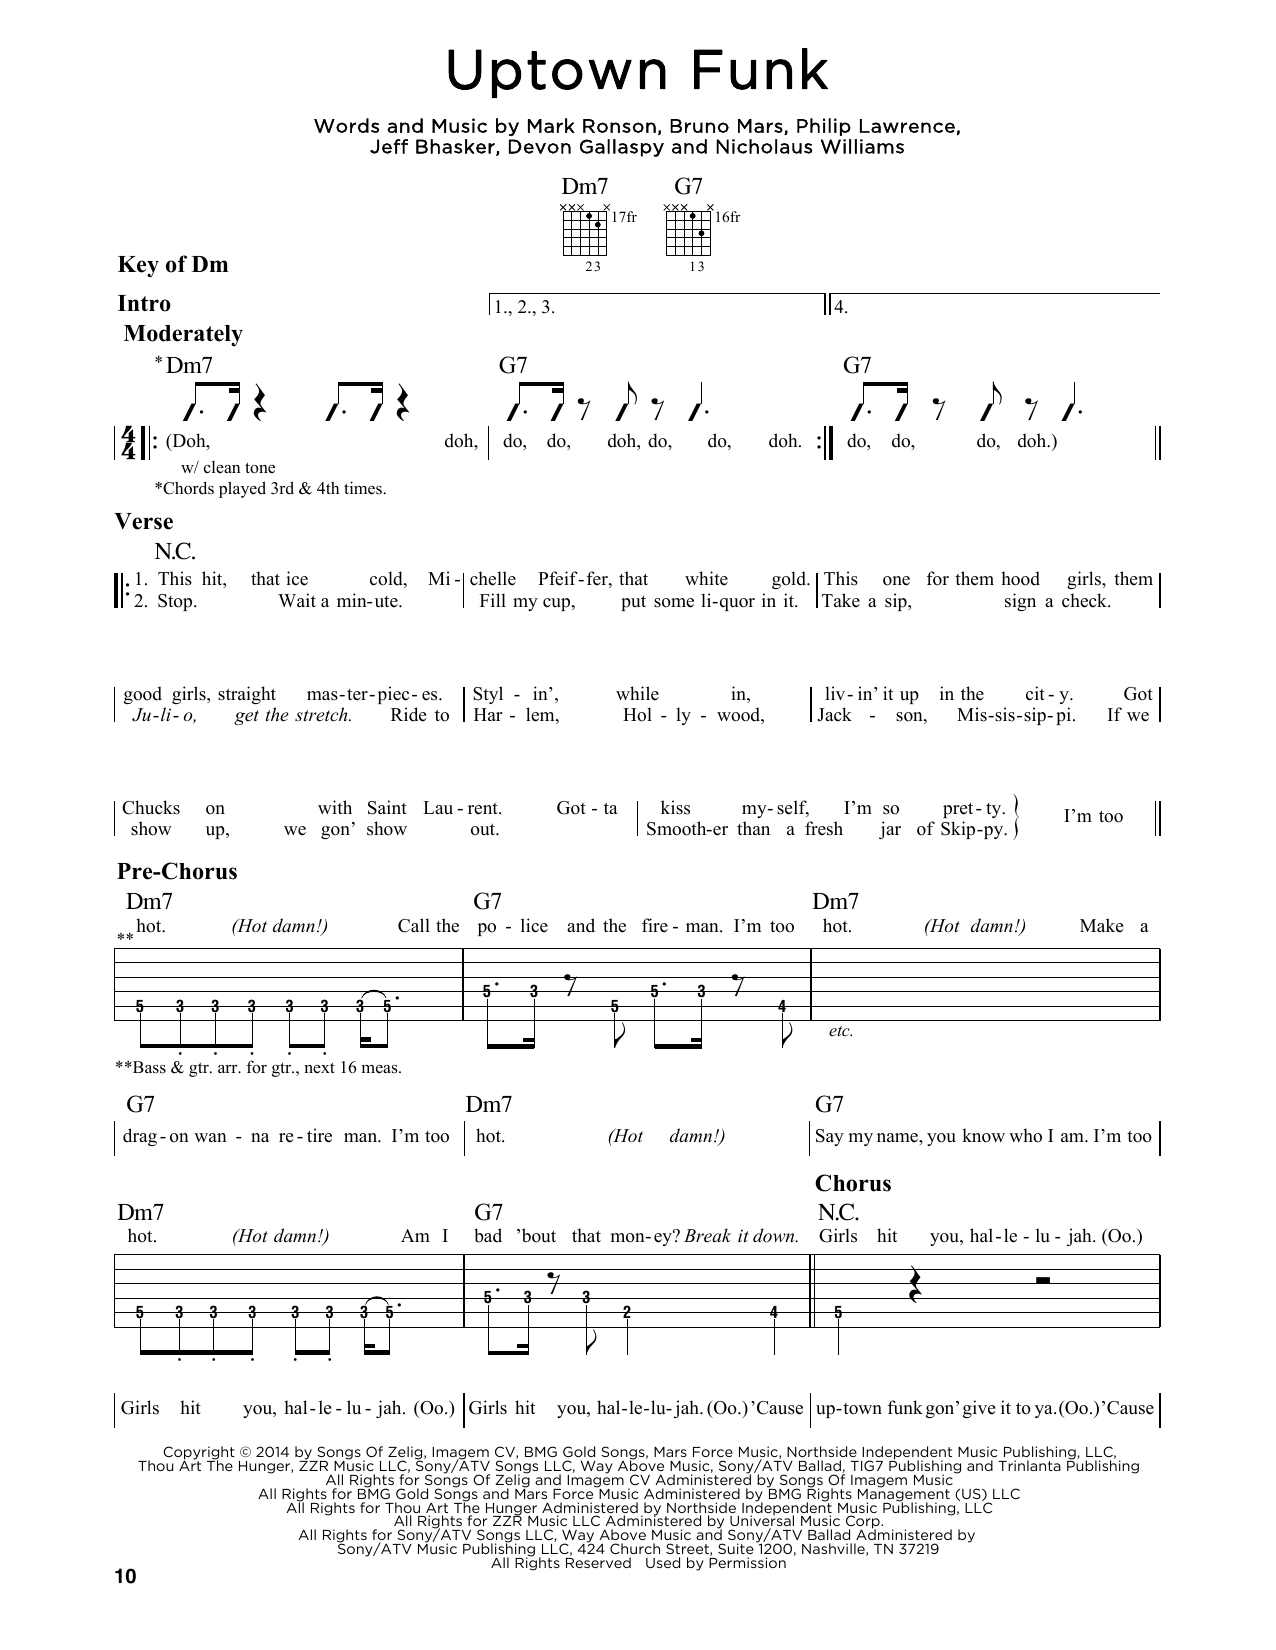 Uptown Funk by Mark Ronson ft. Bruno Mars - Guitar Lead Sheet - Guitar Instructor